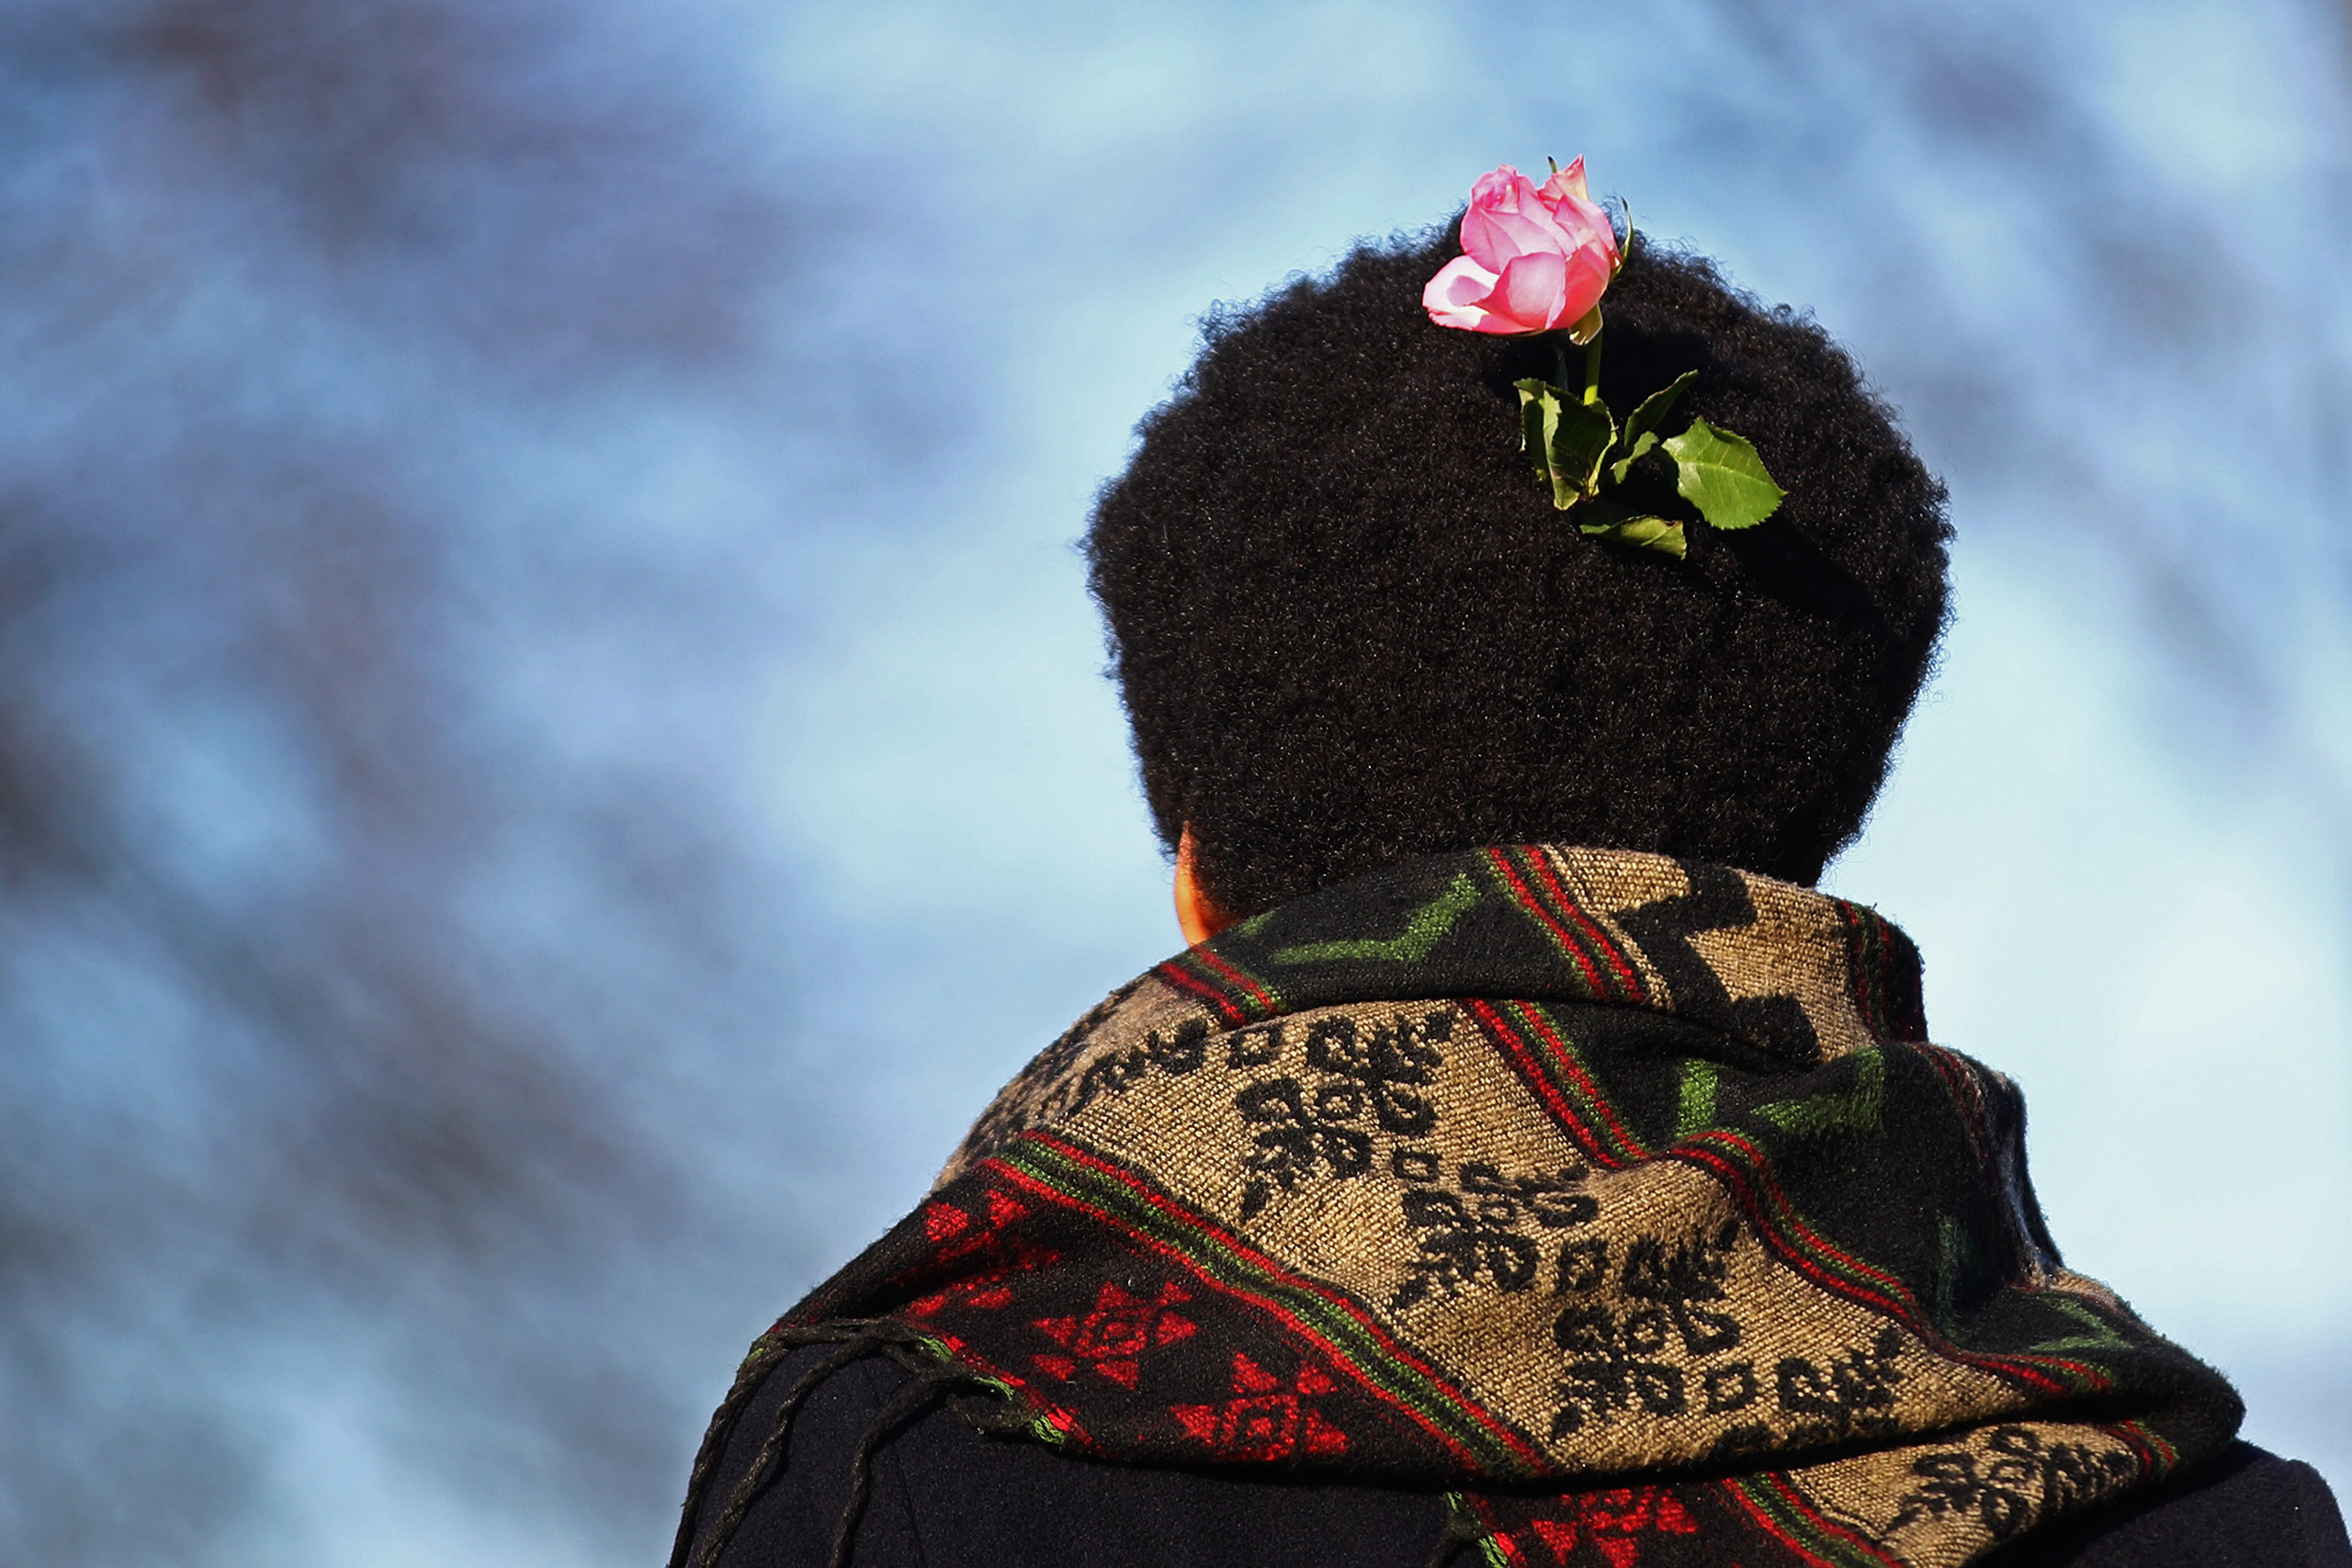 A demonstrator with a pink flower in his hair joins the crowd as they make their way towards the US Consulate during the Women's March held at Museumplein on Jan. 21, 2017 in Amsterdam, Netherlands.